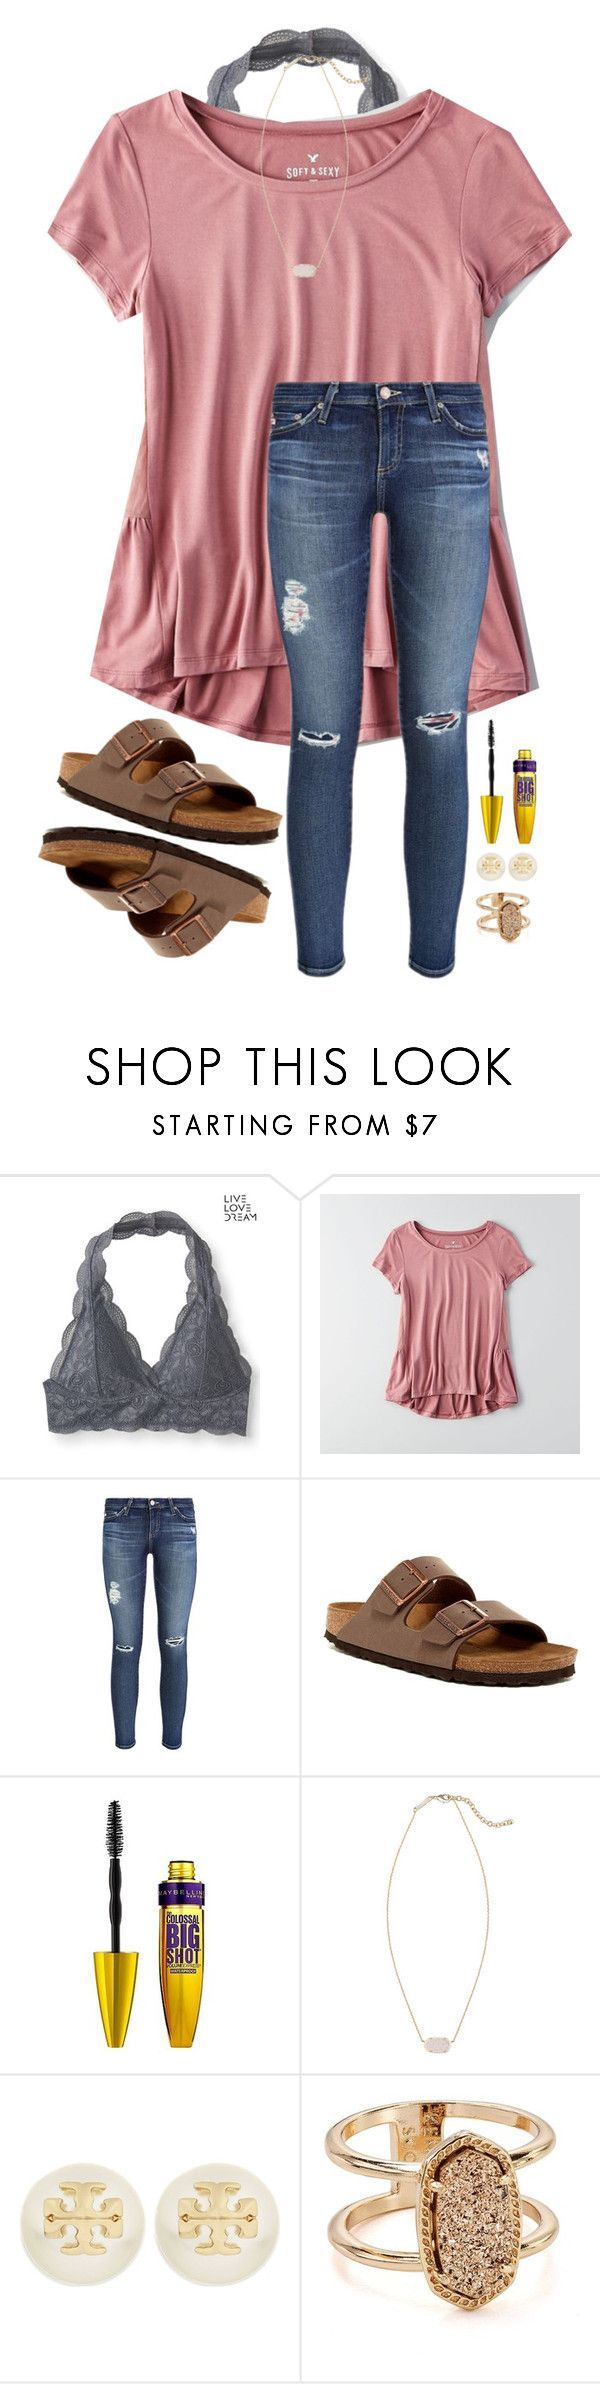 """Back to School Outfits """"Beauty & the Beast is so good!"""" by southernsophia ❤ liked on Polyvore featuring Aéropostale, American Eagle Outfitters, AG Adriano Goldschmied, Birkenstock, Maybelline, Kendra Scott and Tory Burch"""